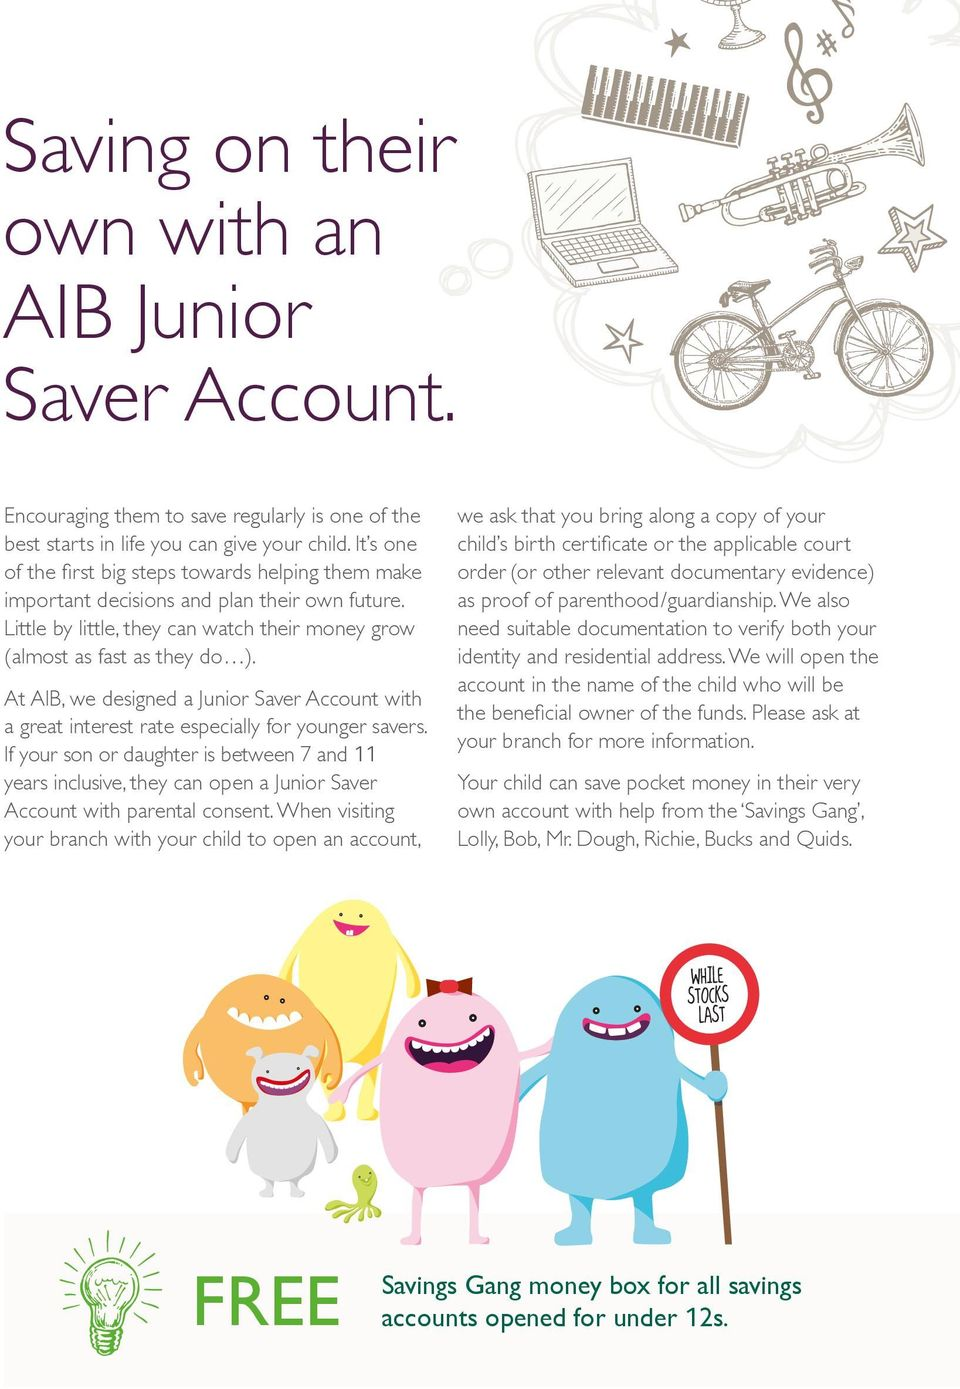 At AIB, we designed a Junior Saver Account with a great interest rate especially for younger savers.